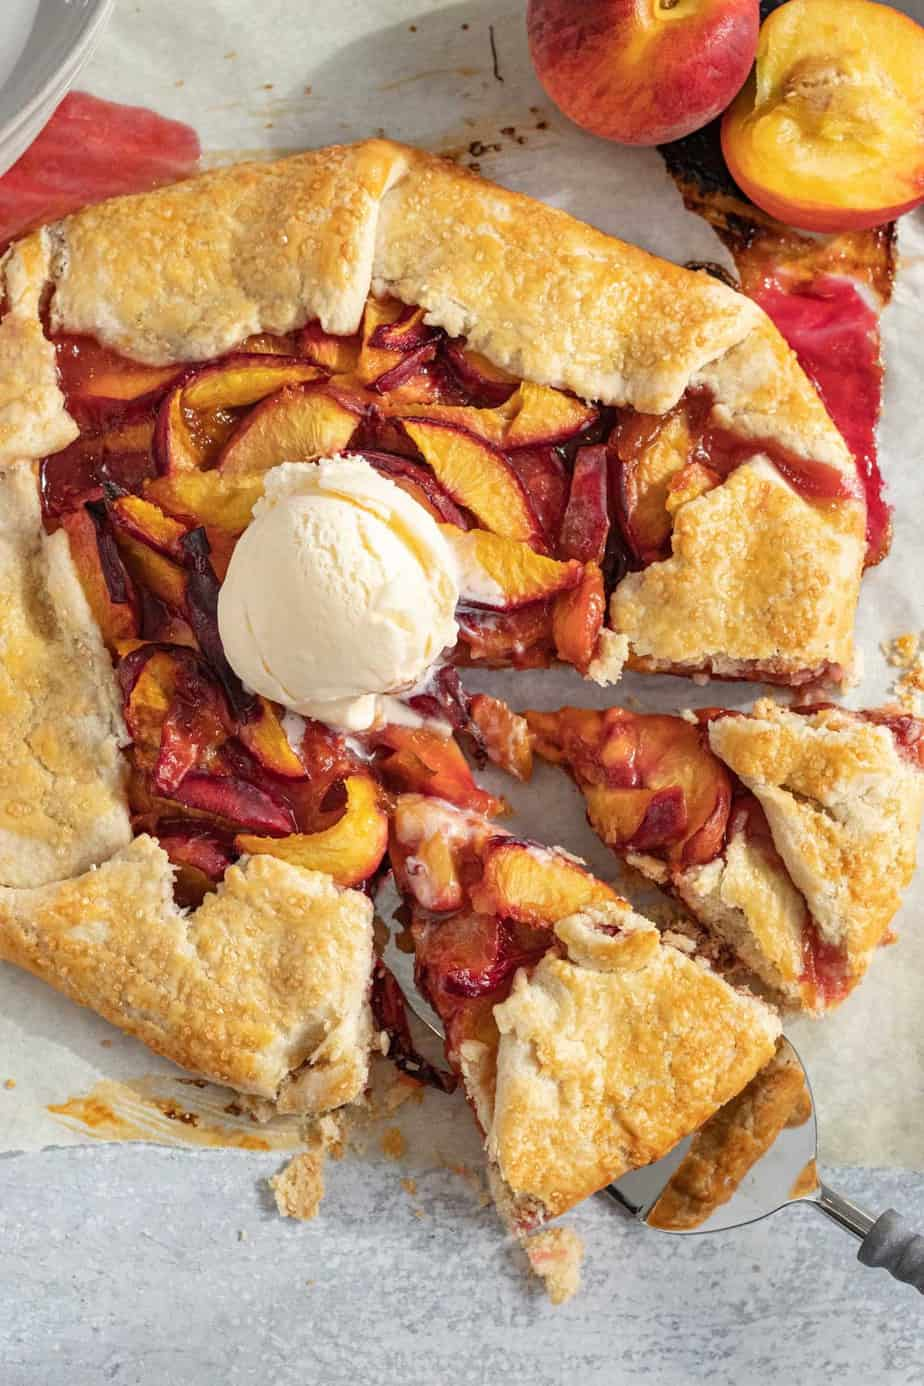 galette with peaches with 2 slices cut out and a scoop of vanilla ice cream on top